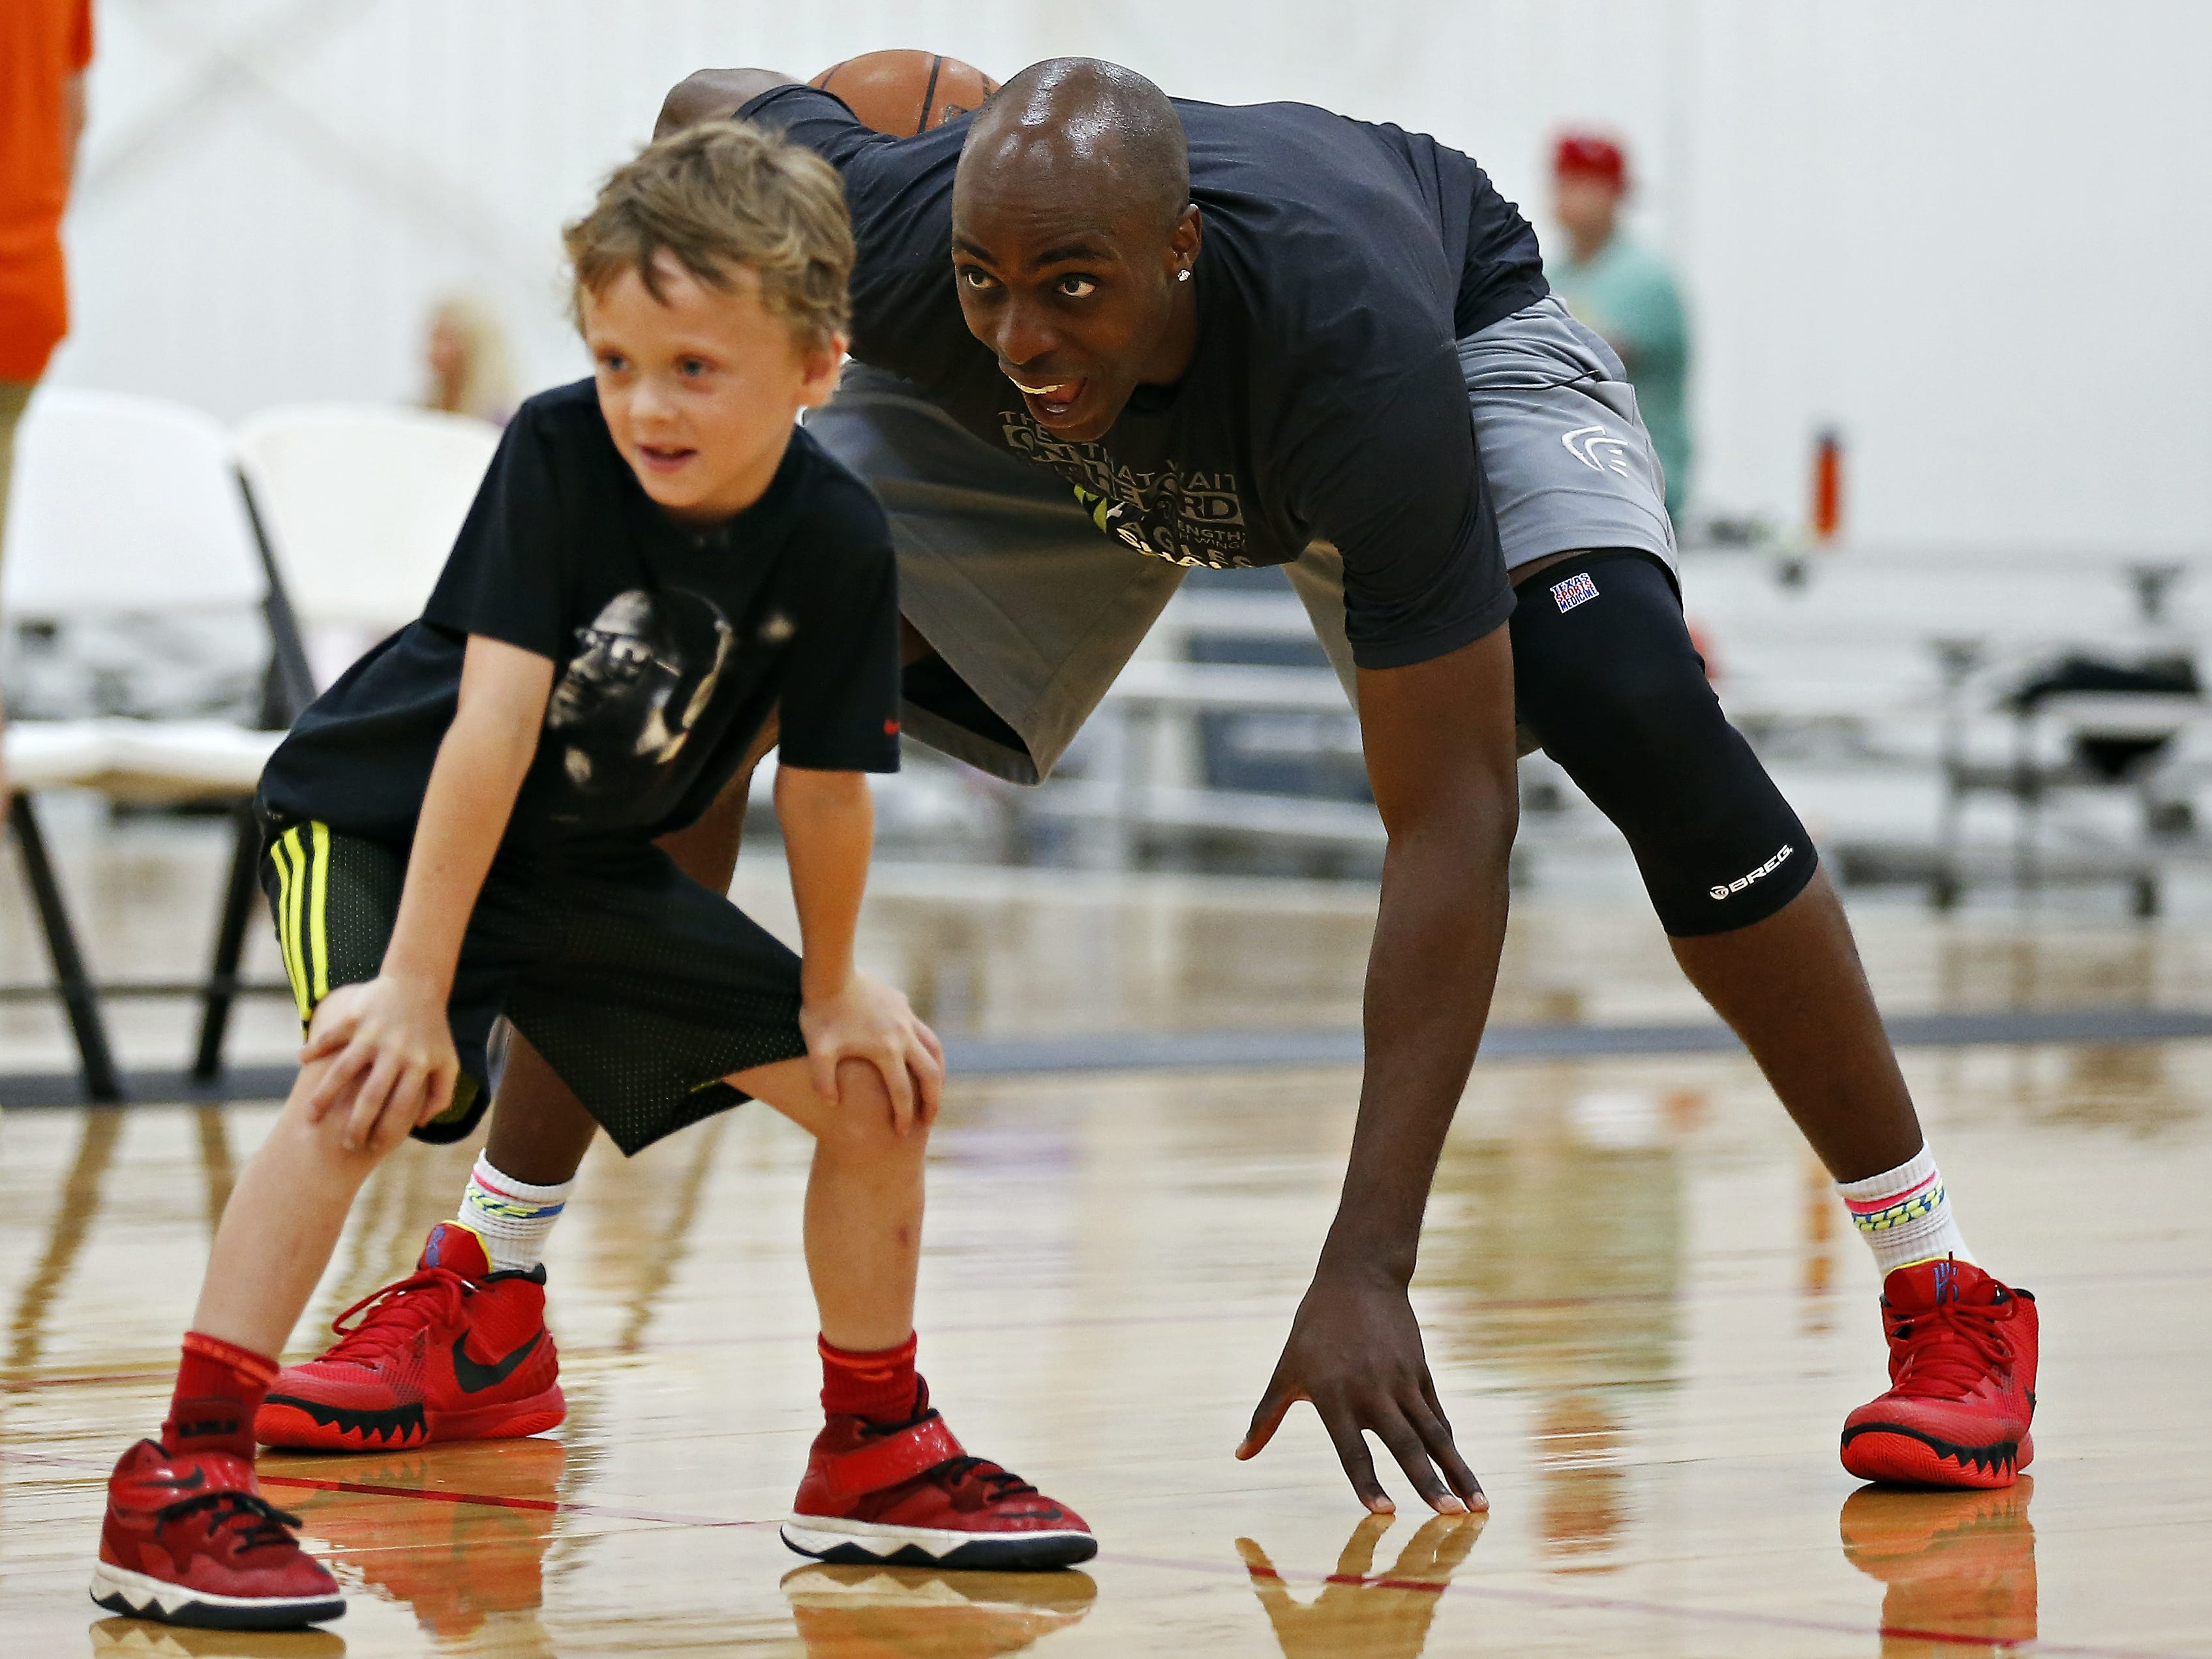 Springfield native and NBA player Anthony Tolliver plays with one of the children attending his annual basketball camp at the E-Zone basketball courts in Springfield, Mo. on June 16, 2015.